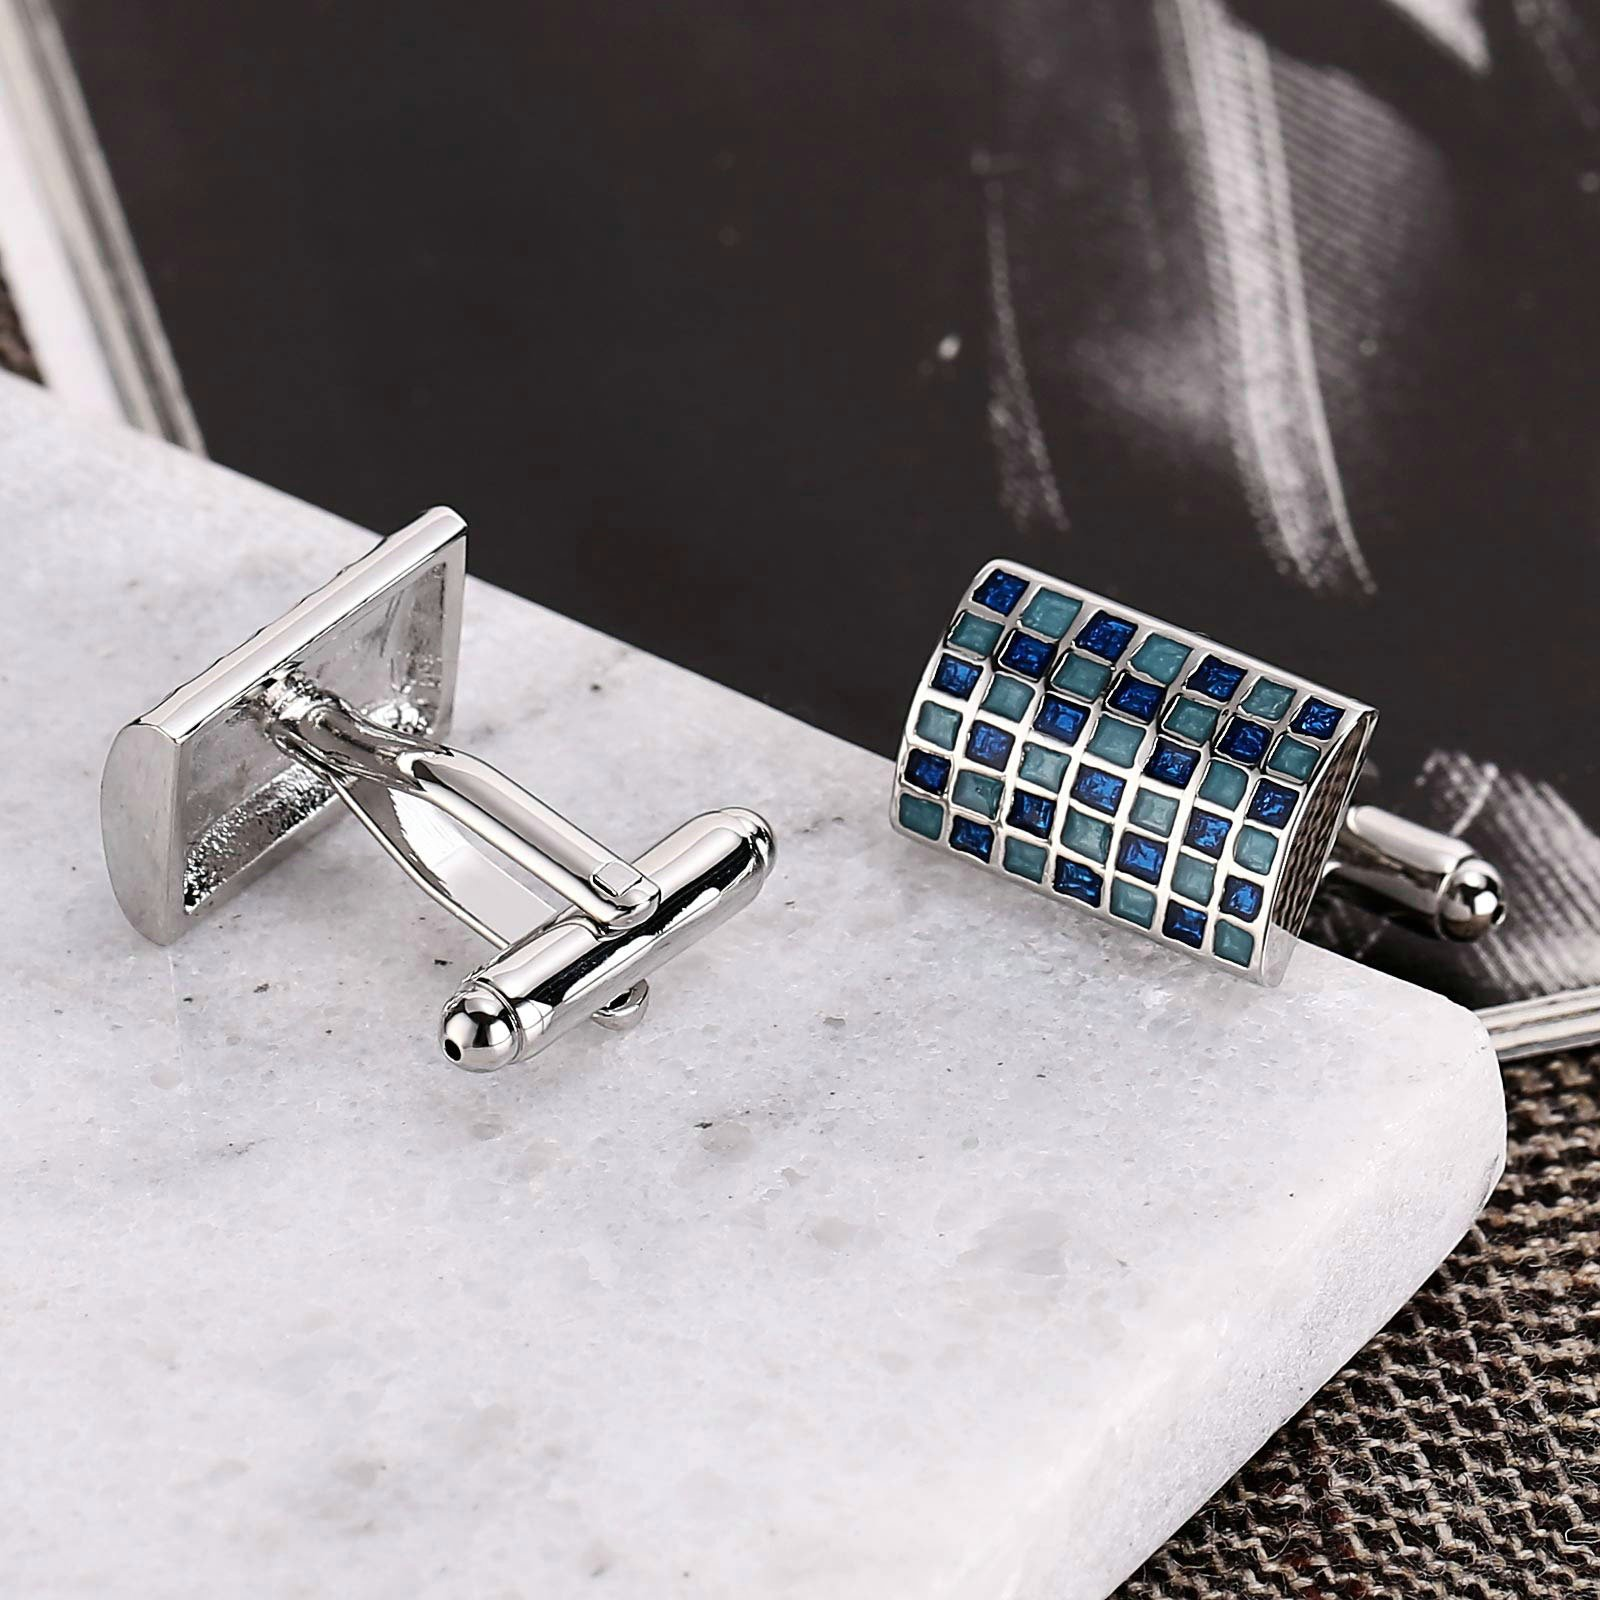 Gnzoe Stainless Steel Men's Shirt Cuff Links Business Wedding Grid 2-Color Construction Blue by Gnzoe (Image #4)